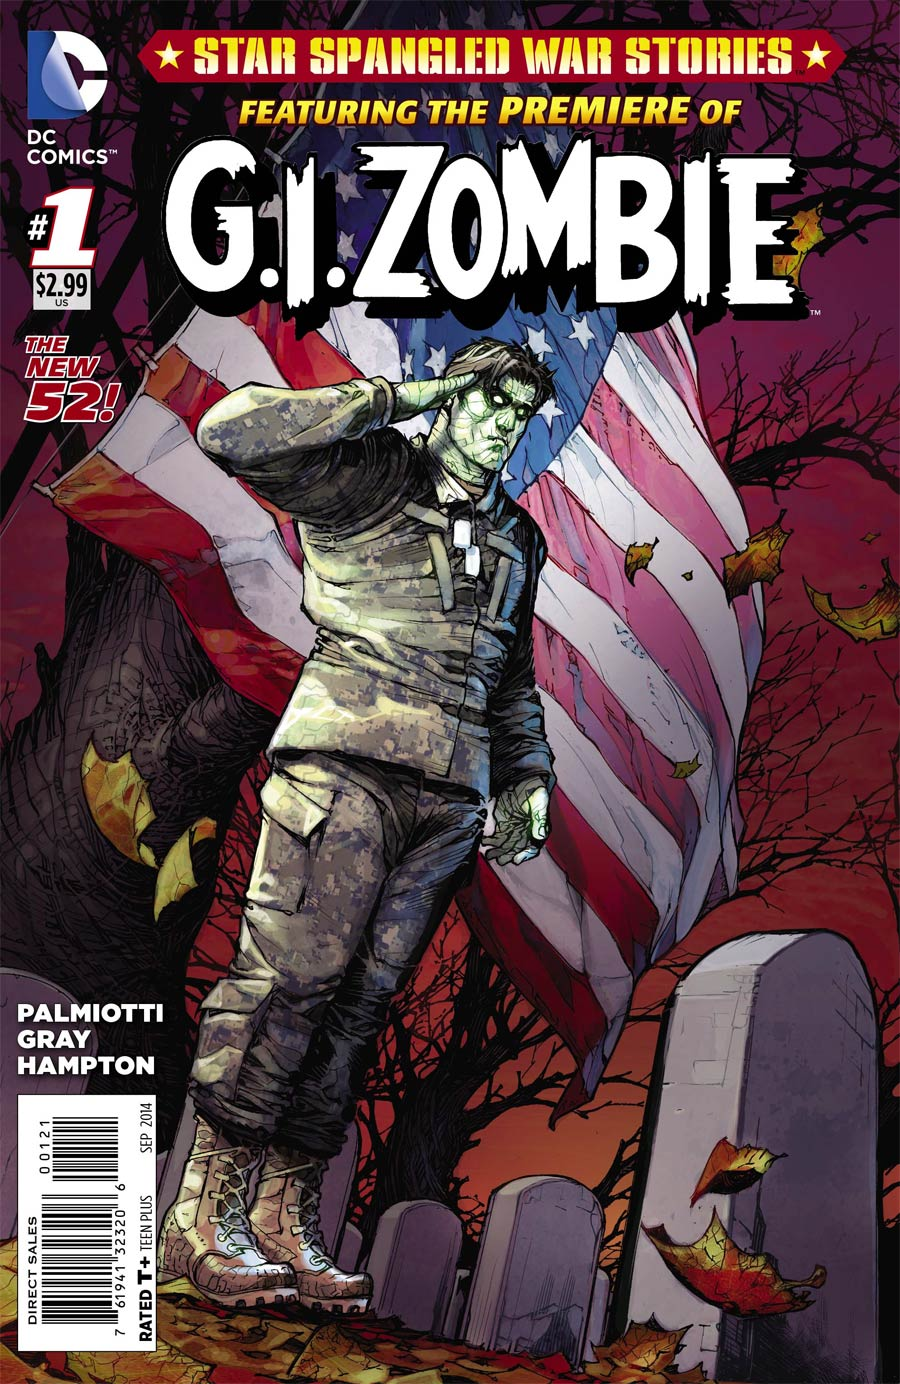 Star-Spangled War Stories Featuring GI Zombie #1 Incentive Darwyn Cooke Variant Cover